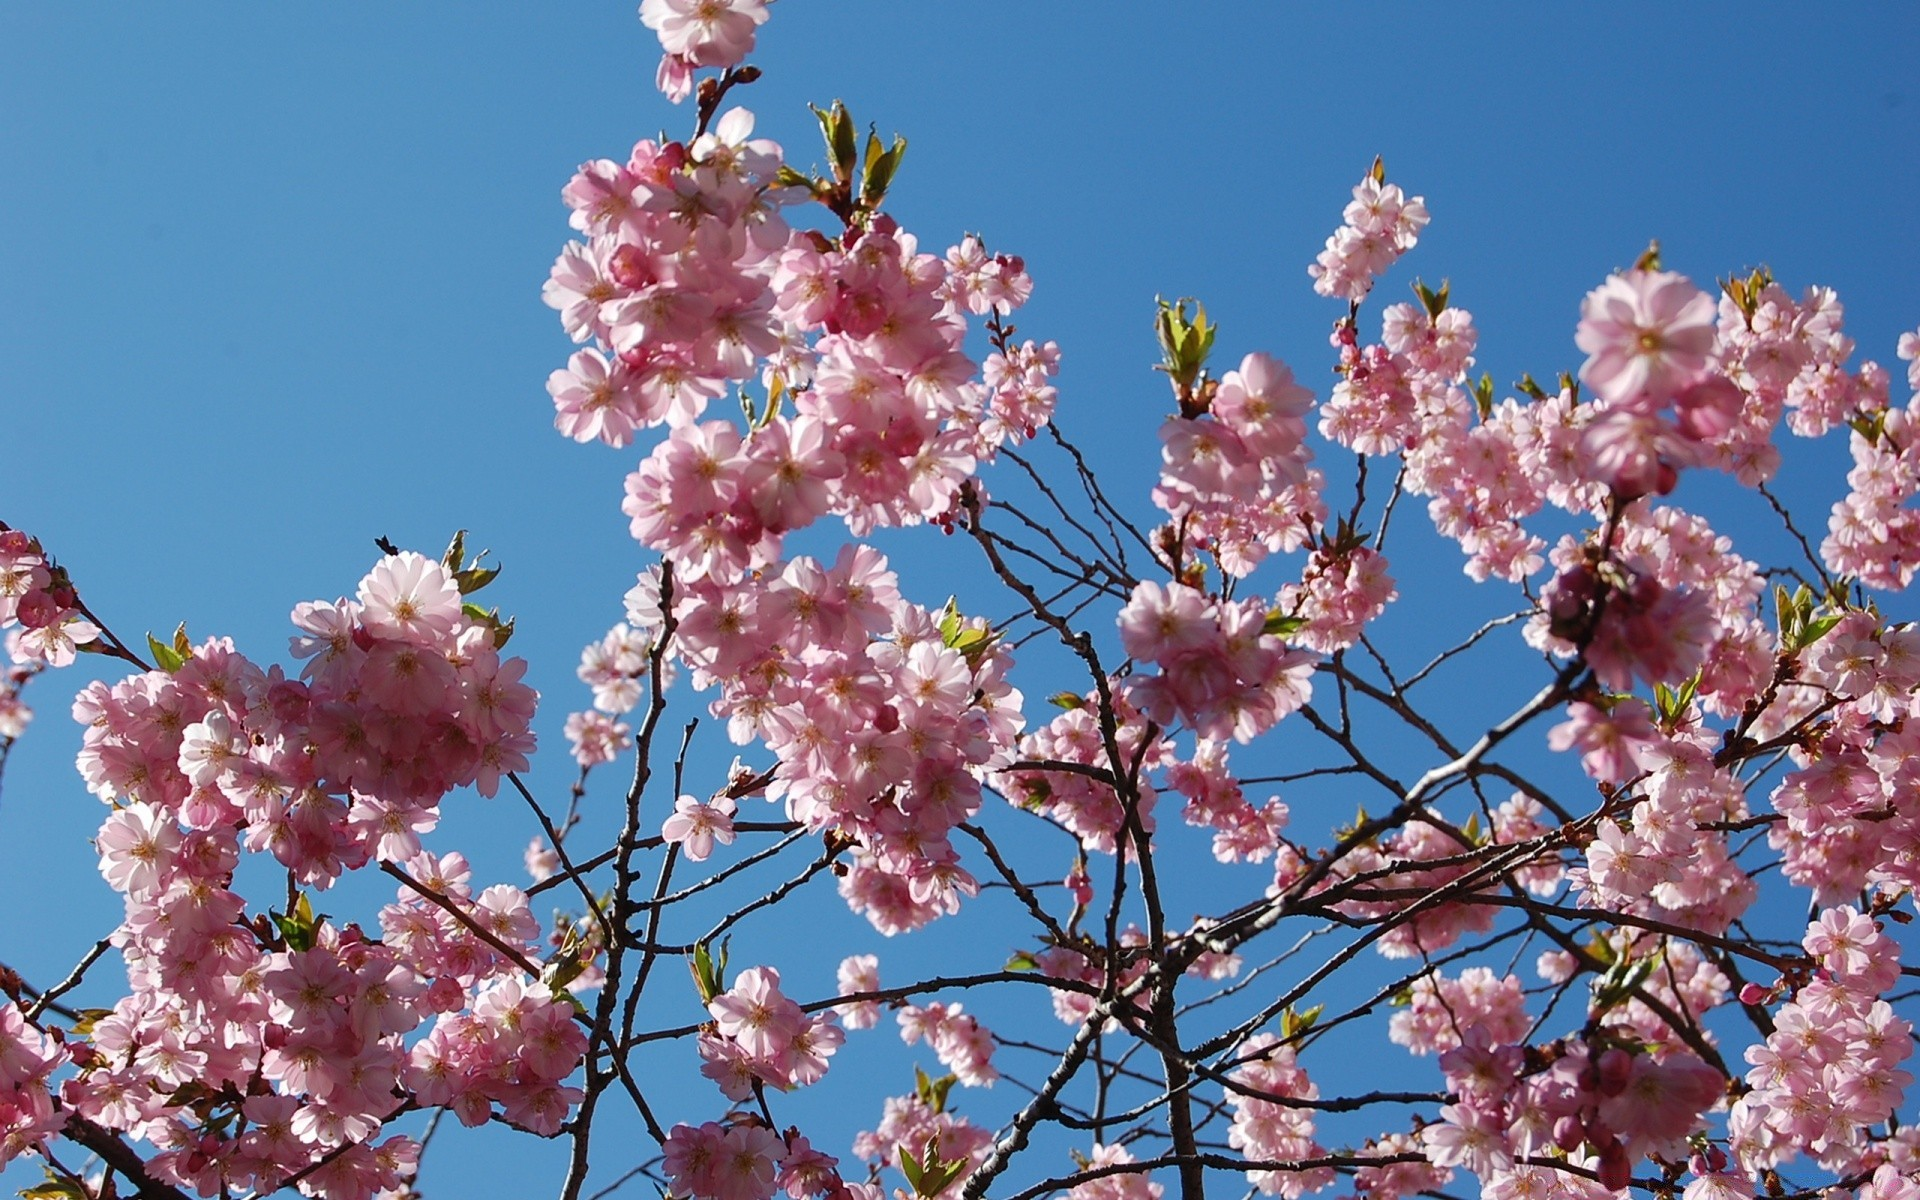 Japanese Cherry Blossom Tree IPhone Wallpapers For Free